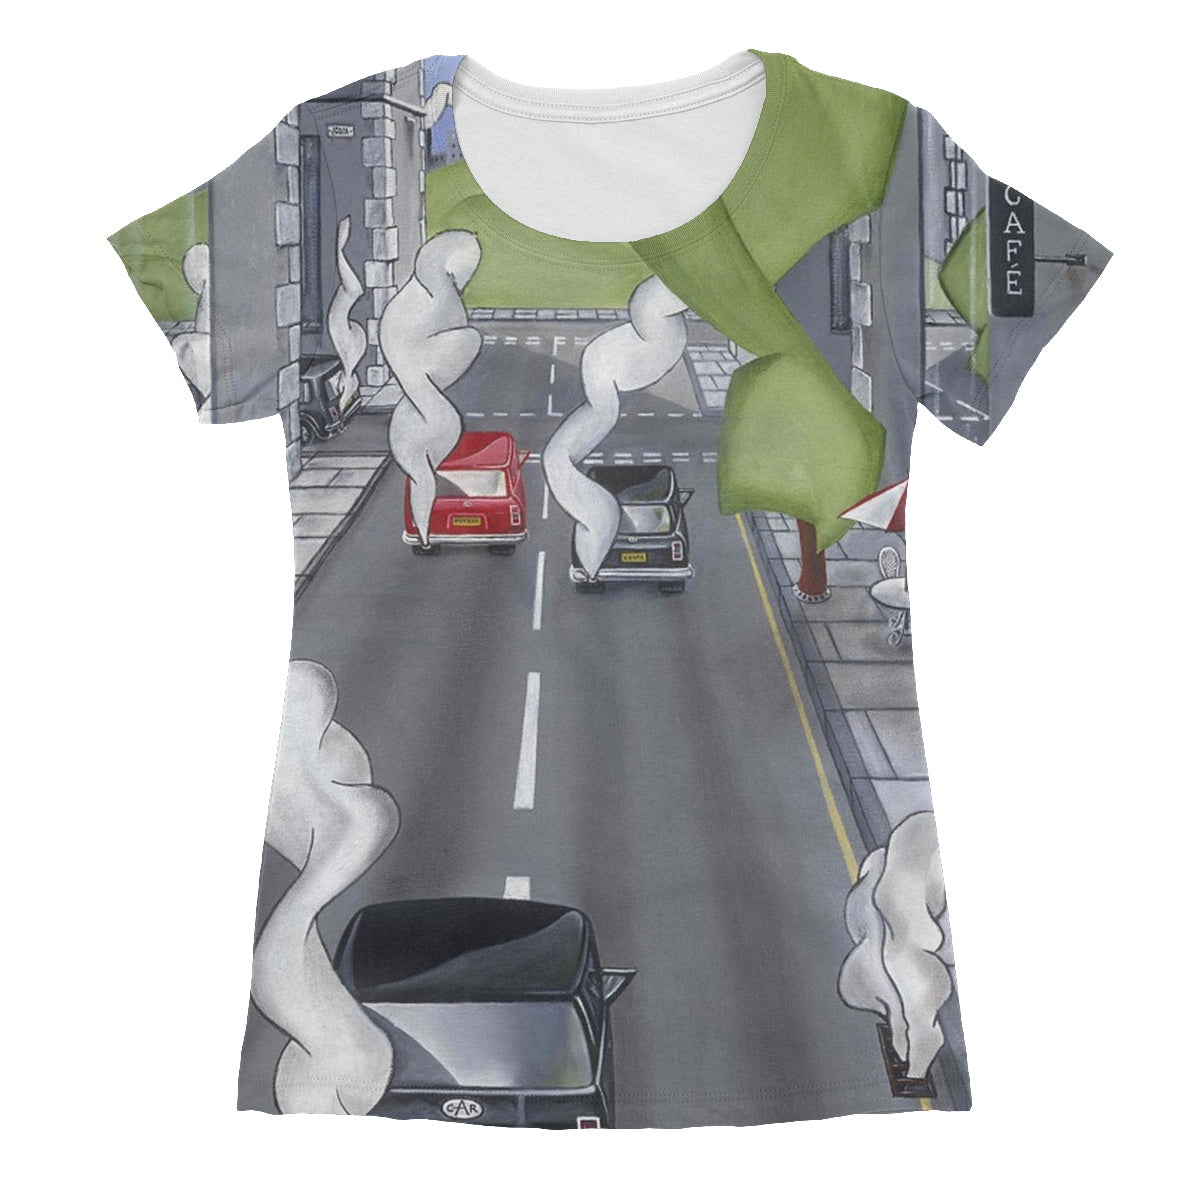 The Cafe Women's Sublimation T-Shirt